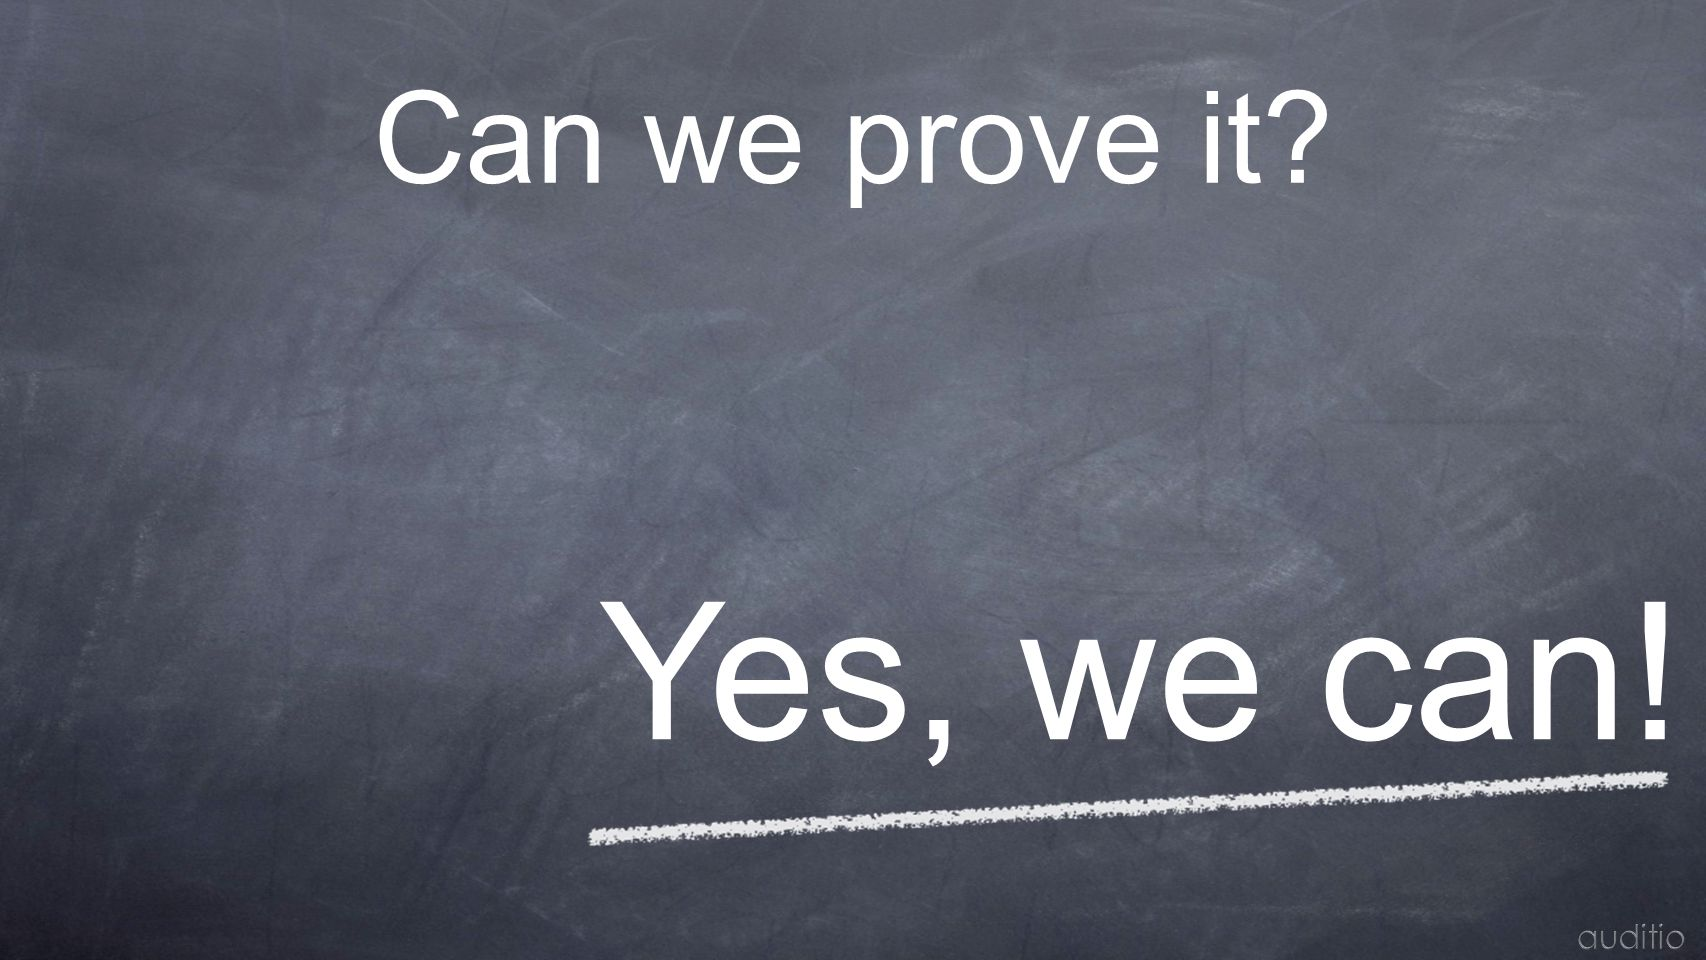 Can we prove it Yes, we can! auditio